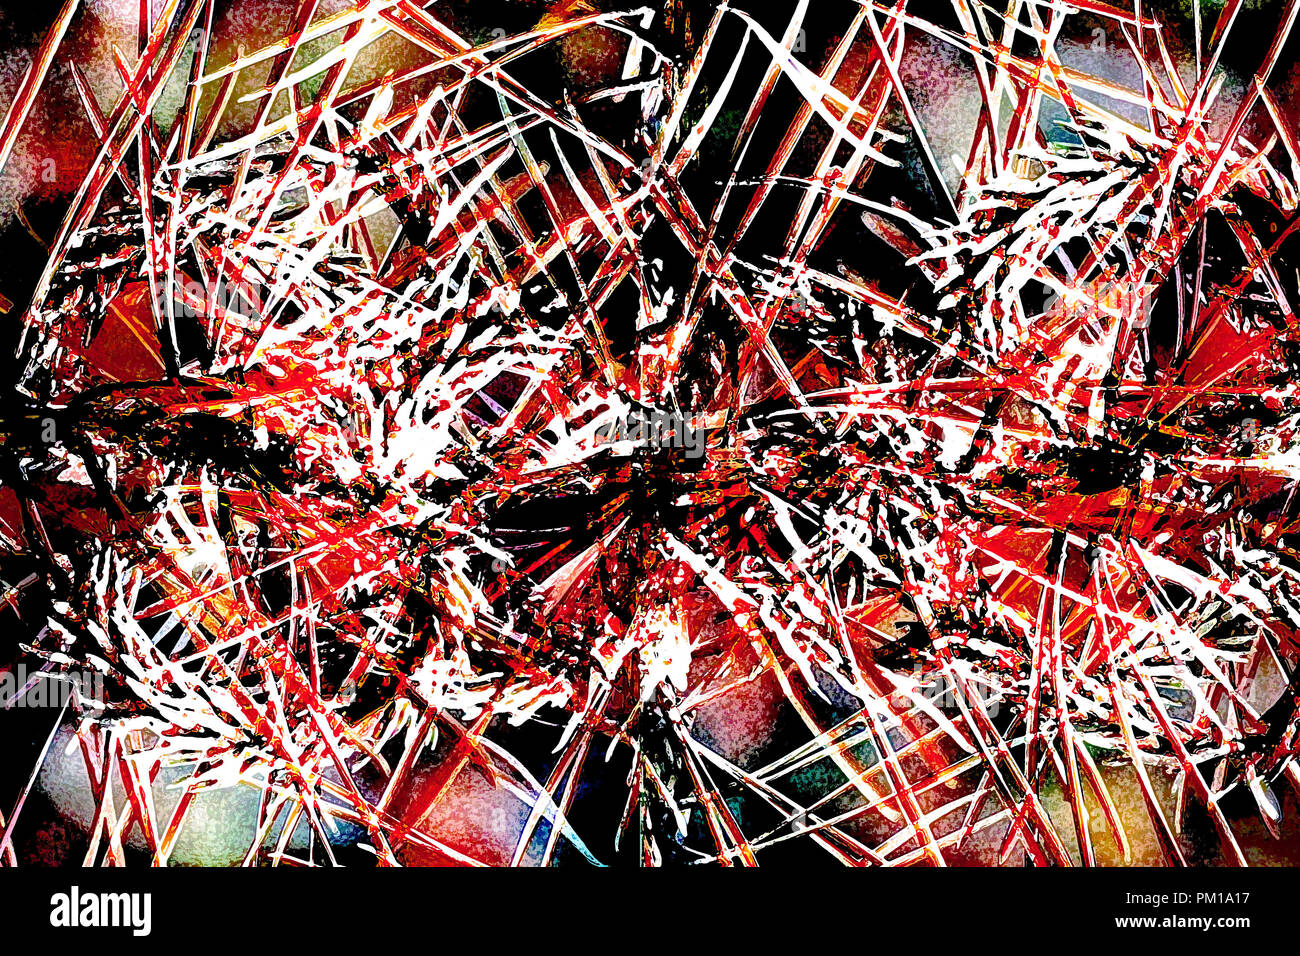 art abstract graphic aggressive grunge background in red color - Stock Image